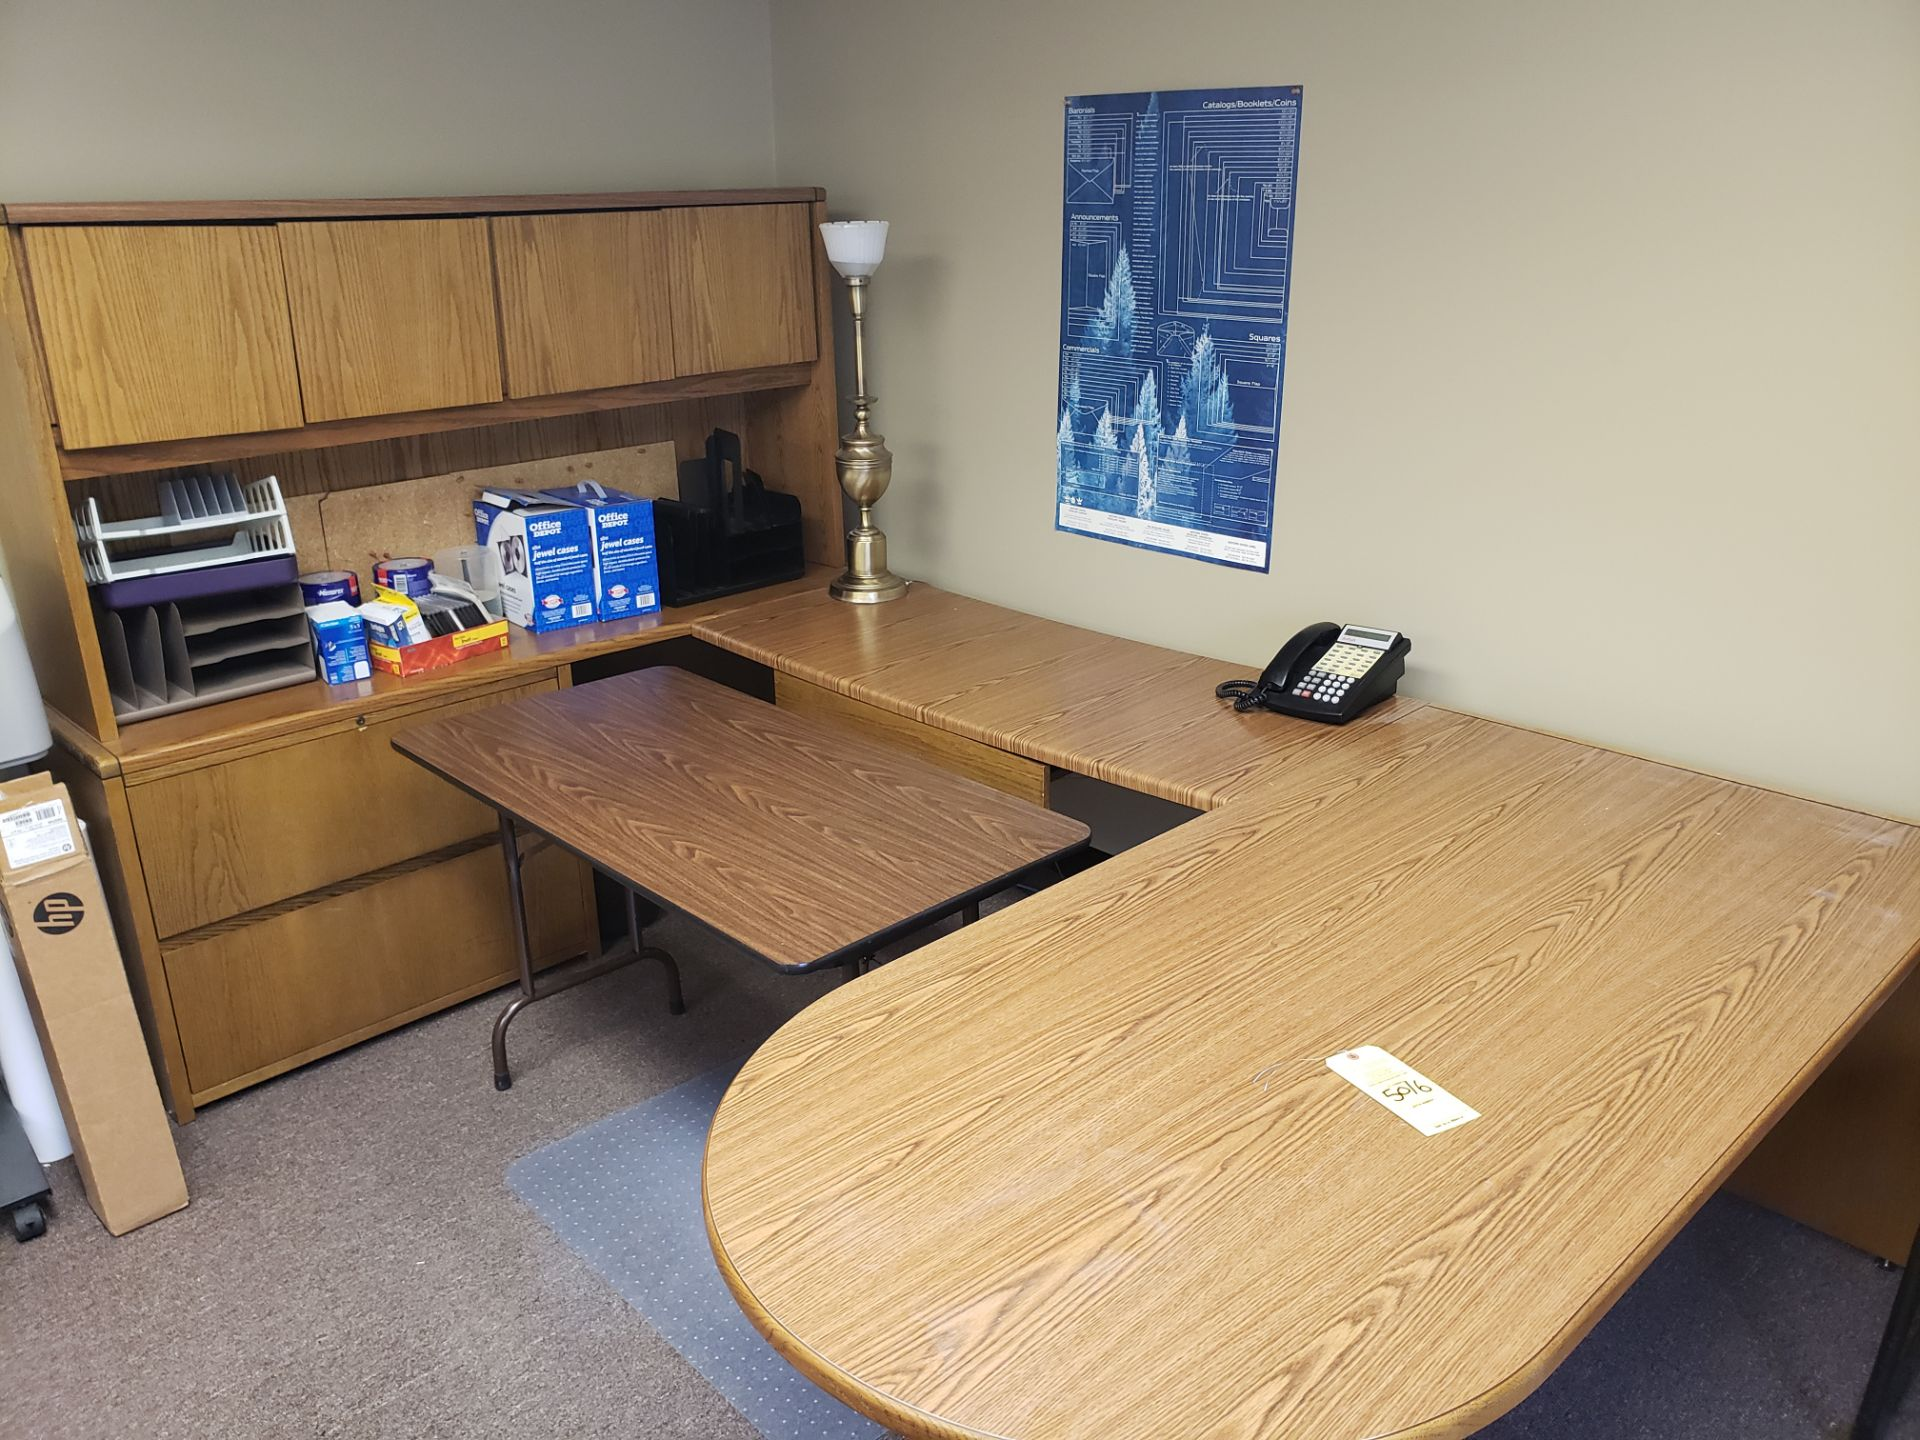 Lot 5016 - CORNER DESK SET & TABLE & CONTENTS (LOCATED AT: 16335 LIMA ROAD BLDG. 4 HUNTERTOWN, IN 46748)